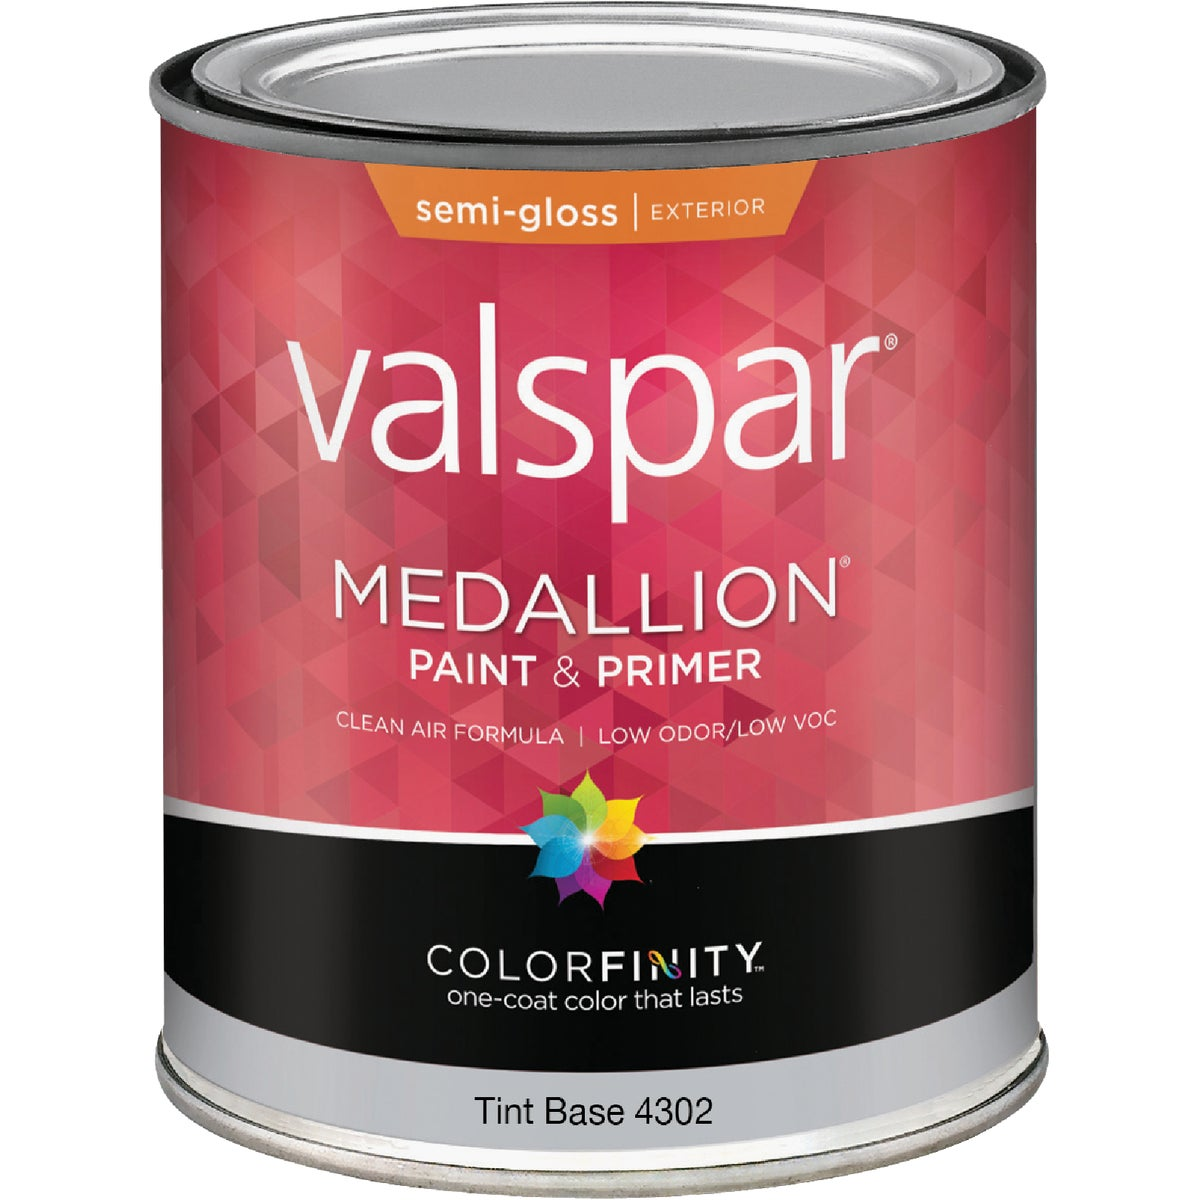 EXT S/G TINT BS PAINT - 027.0004302.005 by Valspar Corp